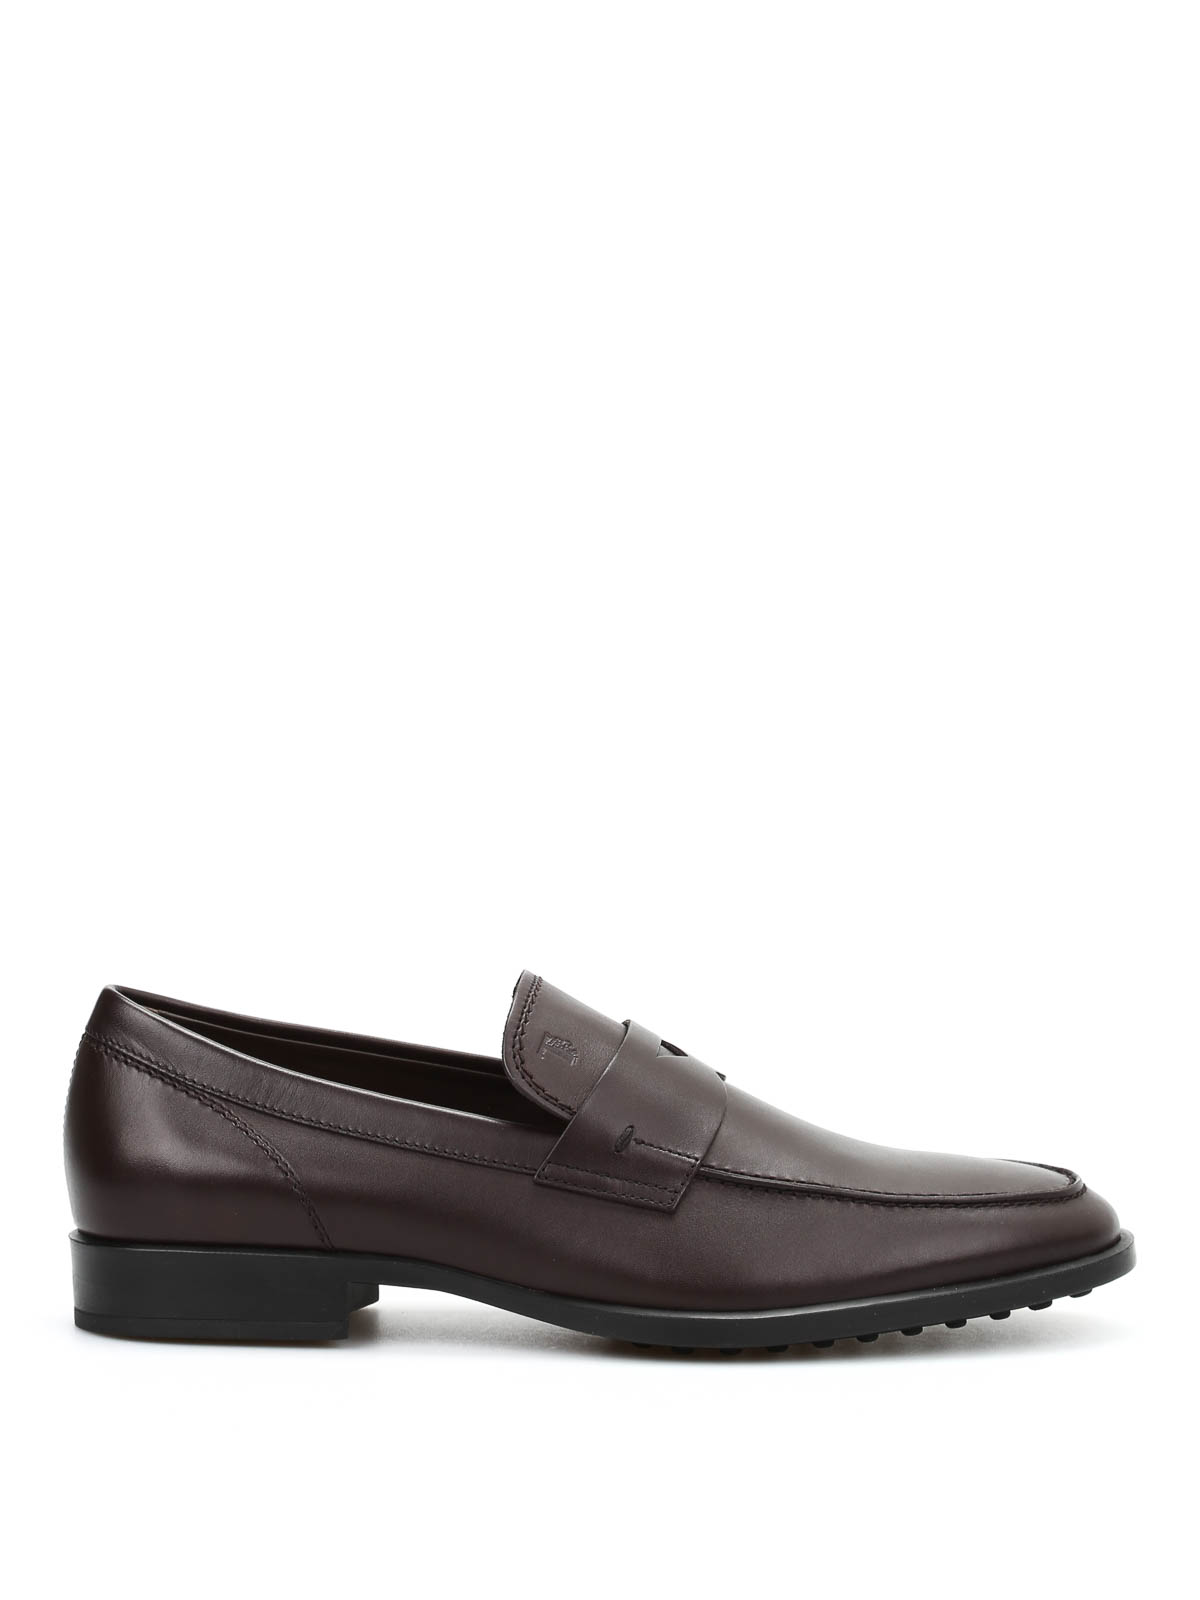 Tod's Men's Smooth Leather Penny Loafers In Brown